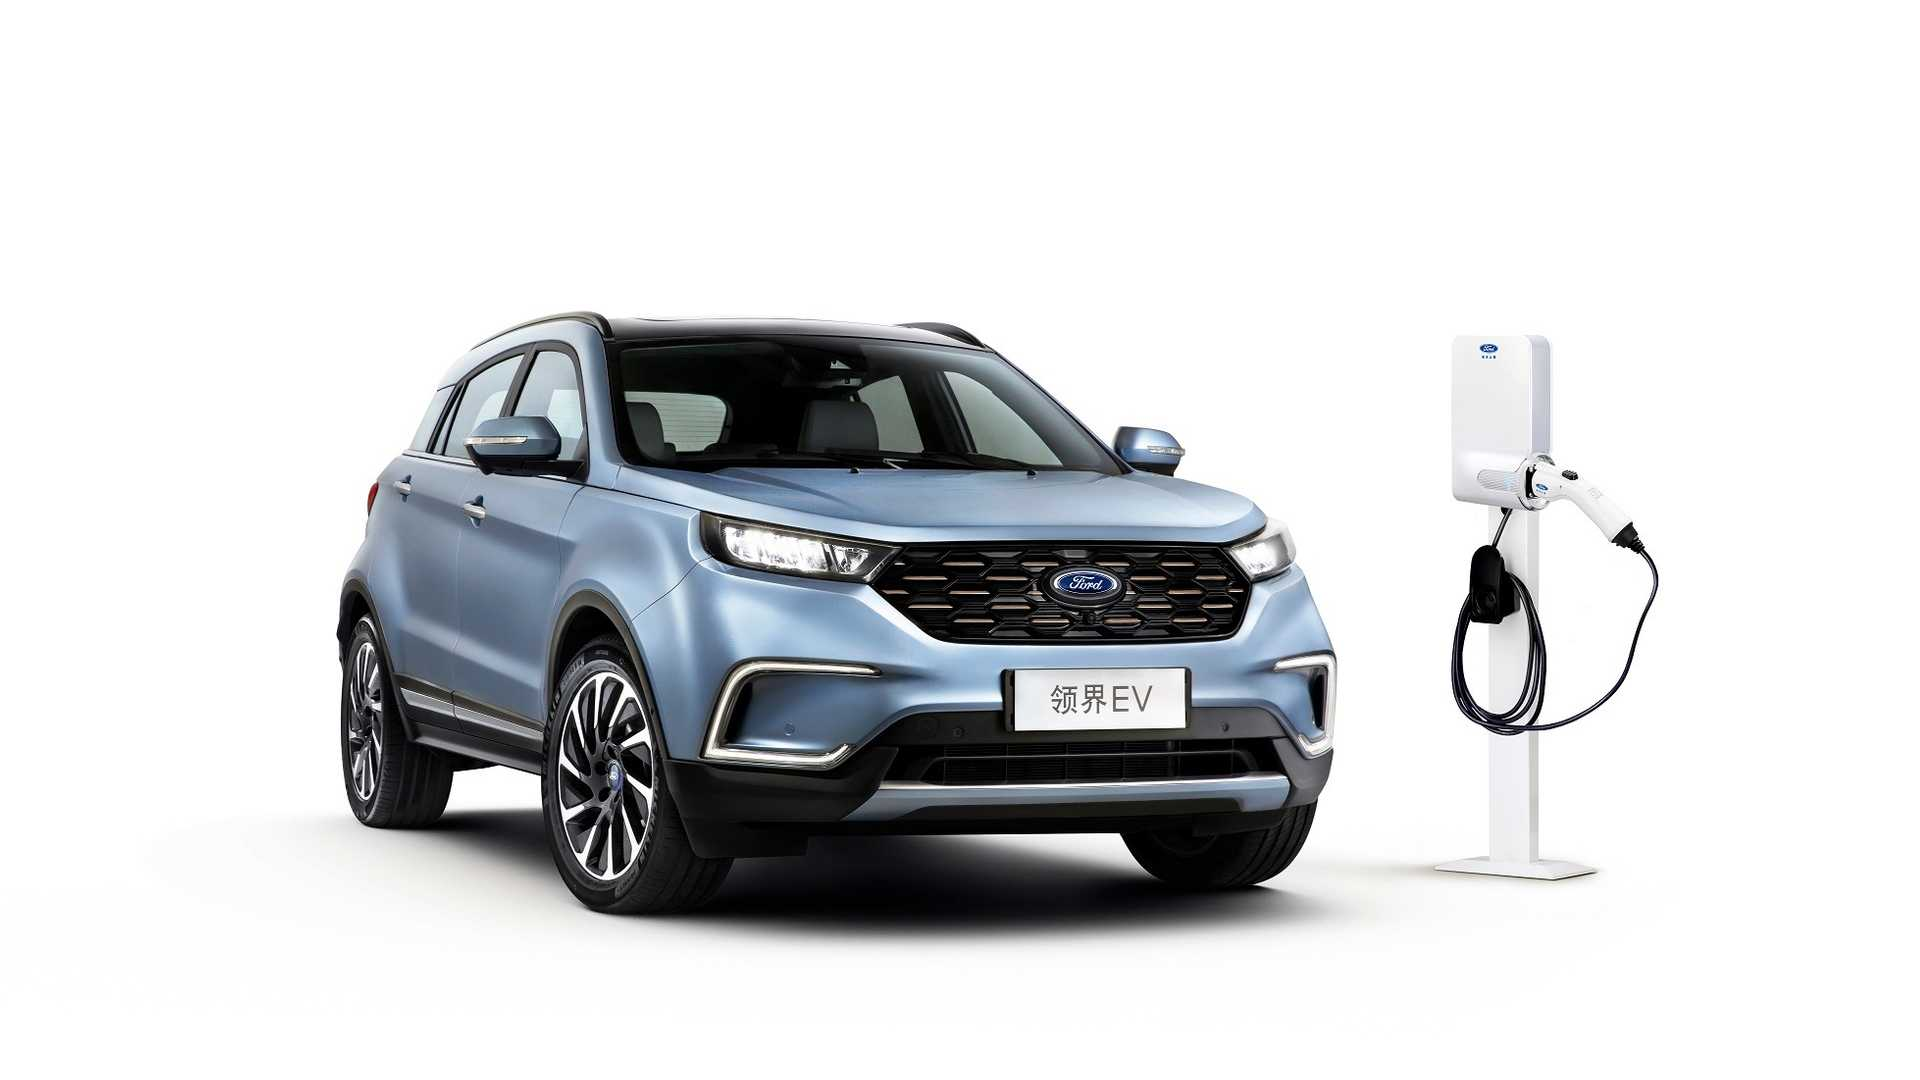 Ford has joined efforts with its long-standing partner, Jiangling Motors Corporation, to design and produce what it calls an electric version of its Territory SUV